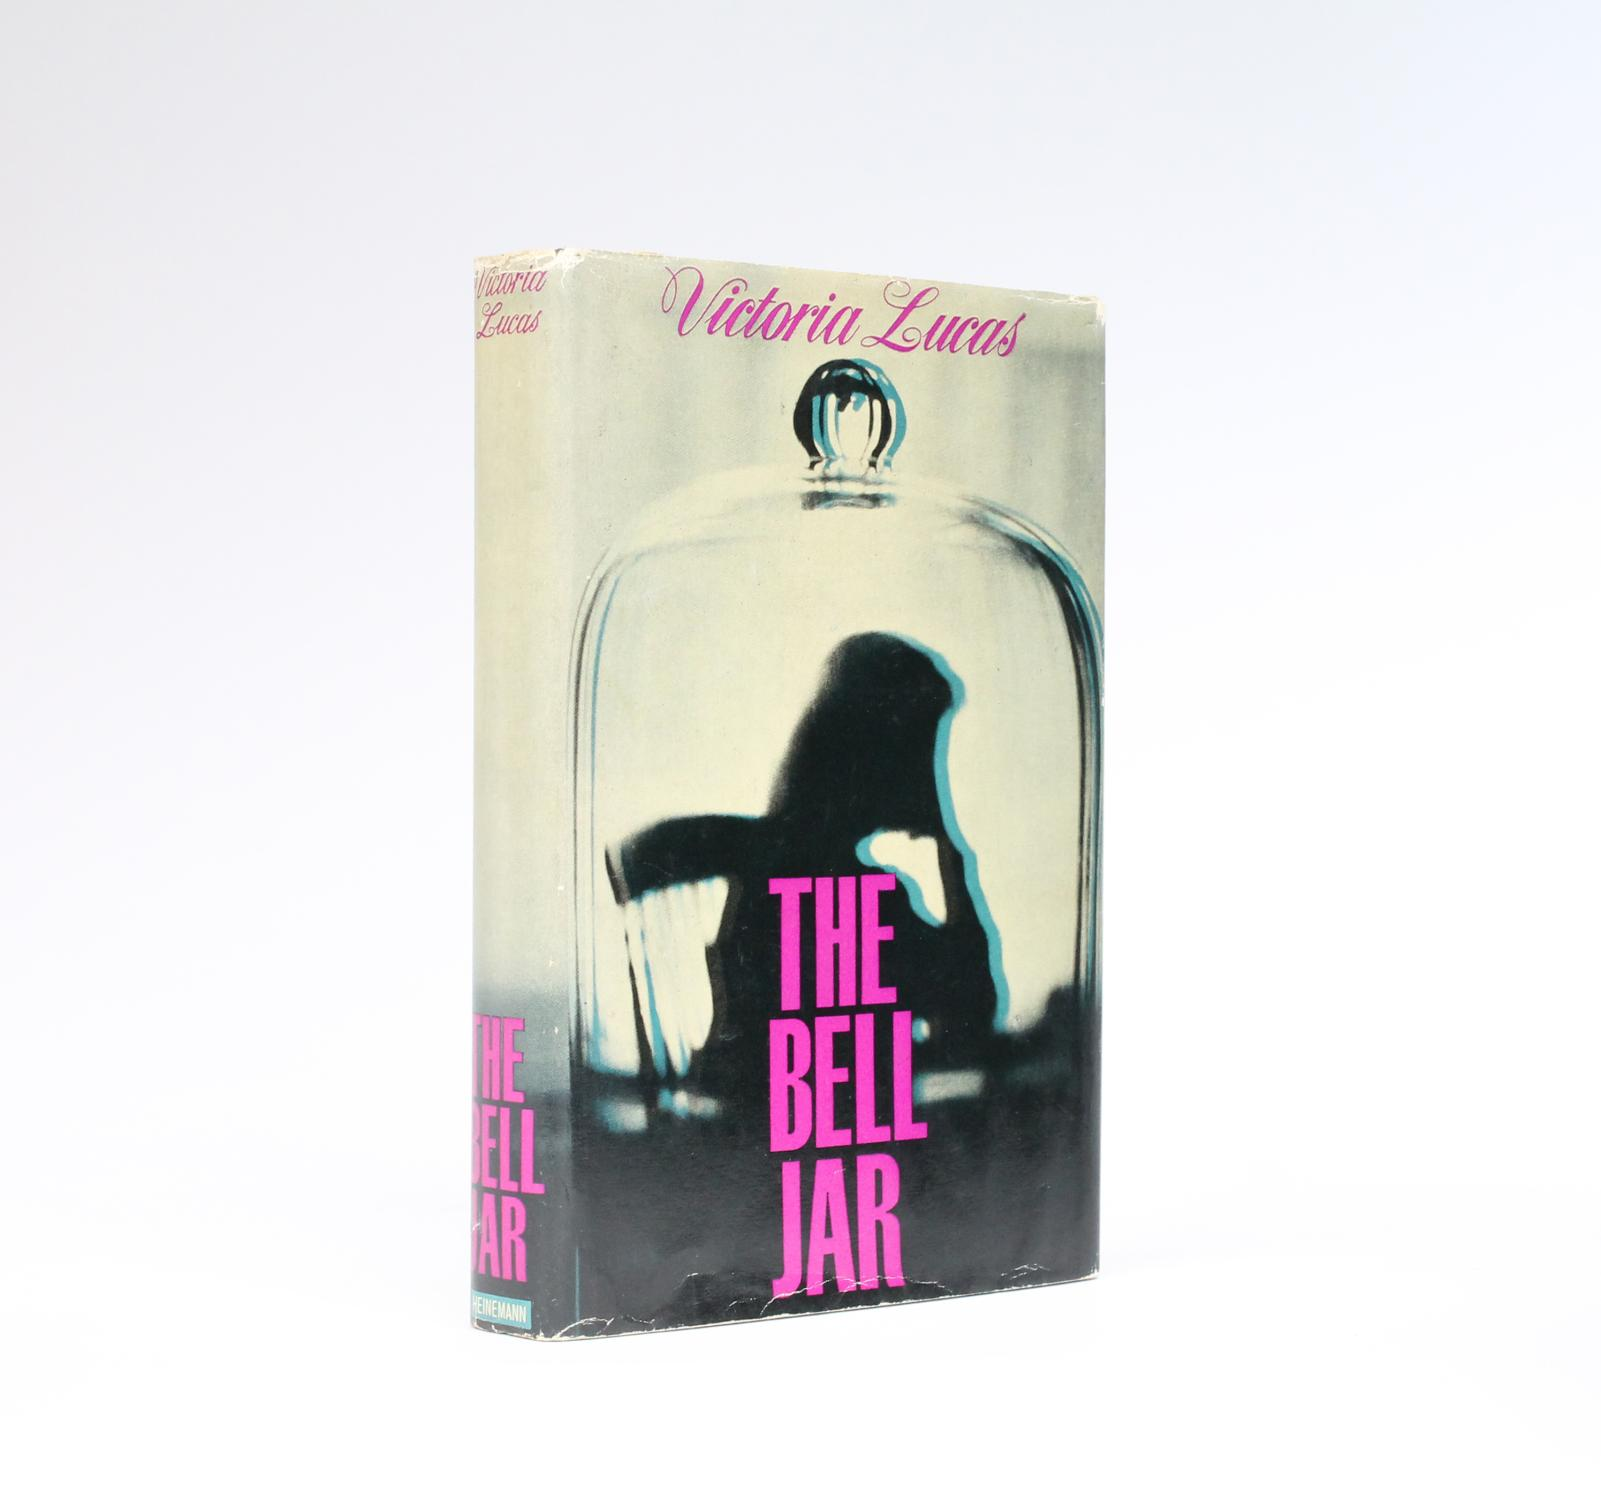 sylvia plath the bell jar 1960 1969 hardcover first sylvia plath the bell jar 1960 1969 hardcover first edition dust jacket